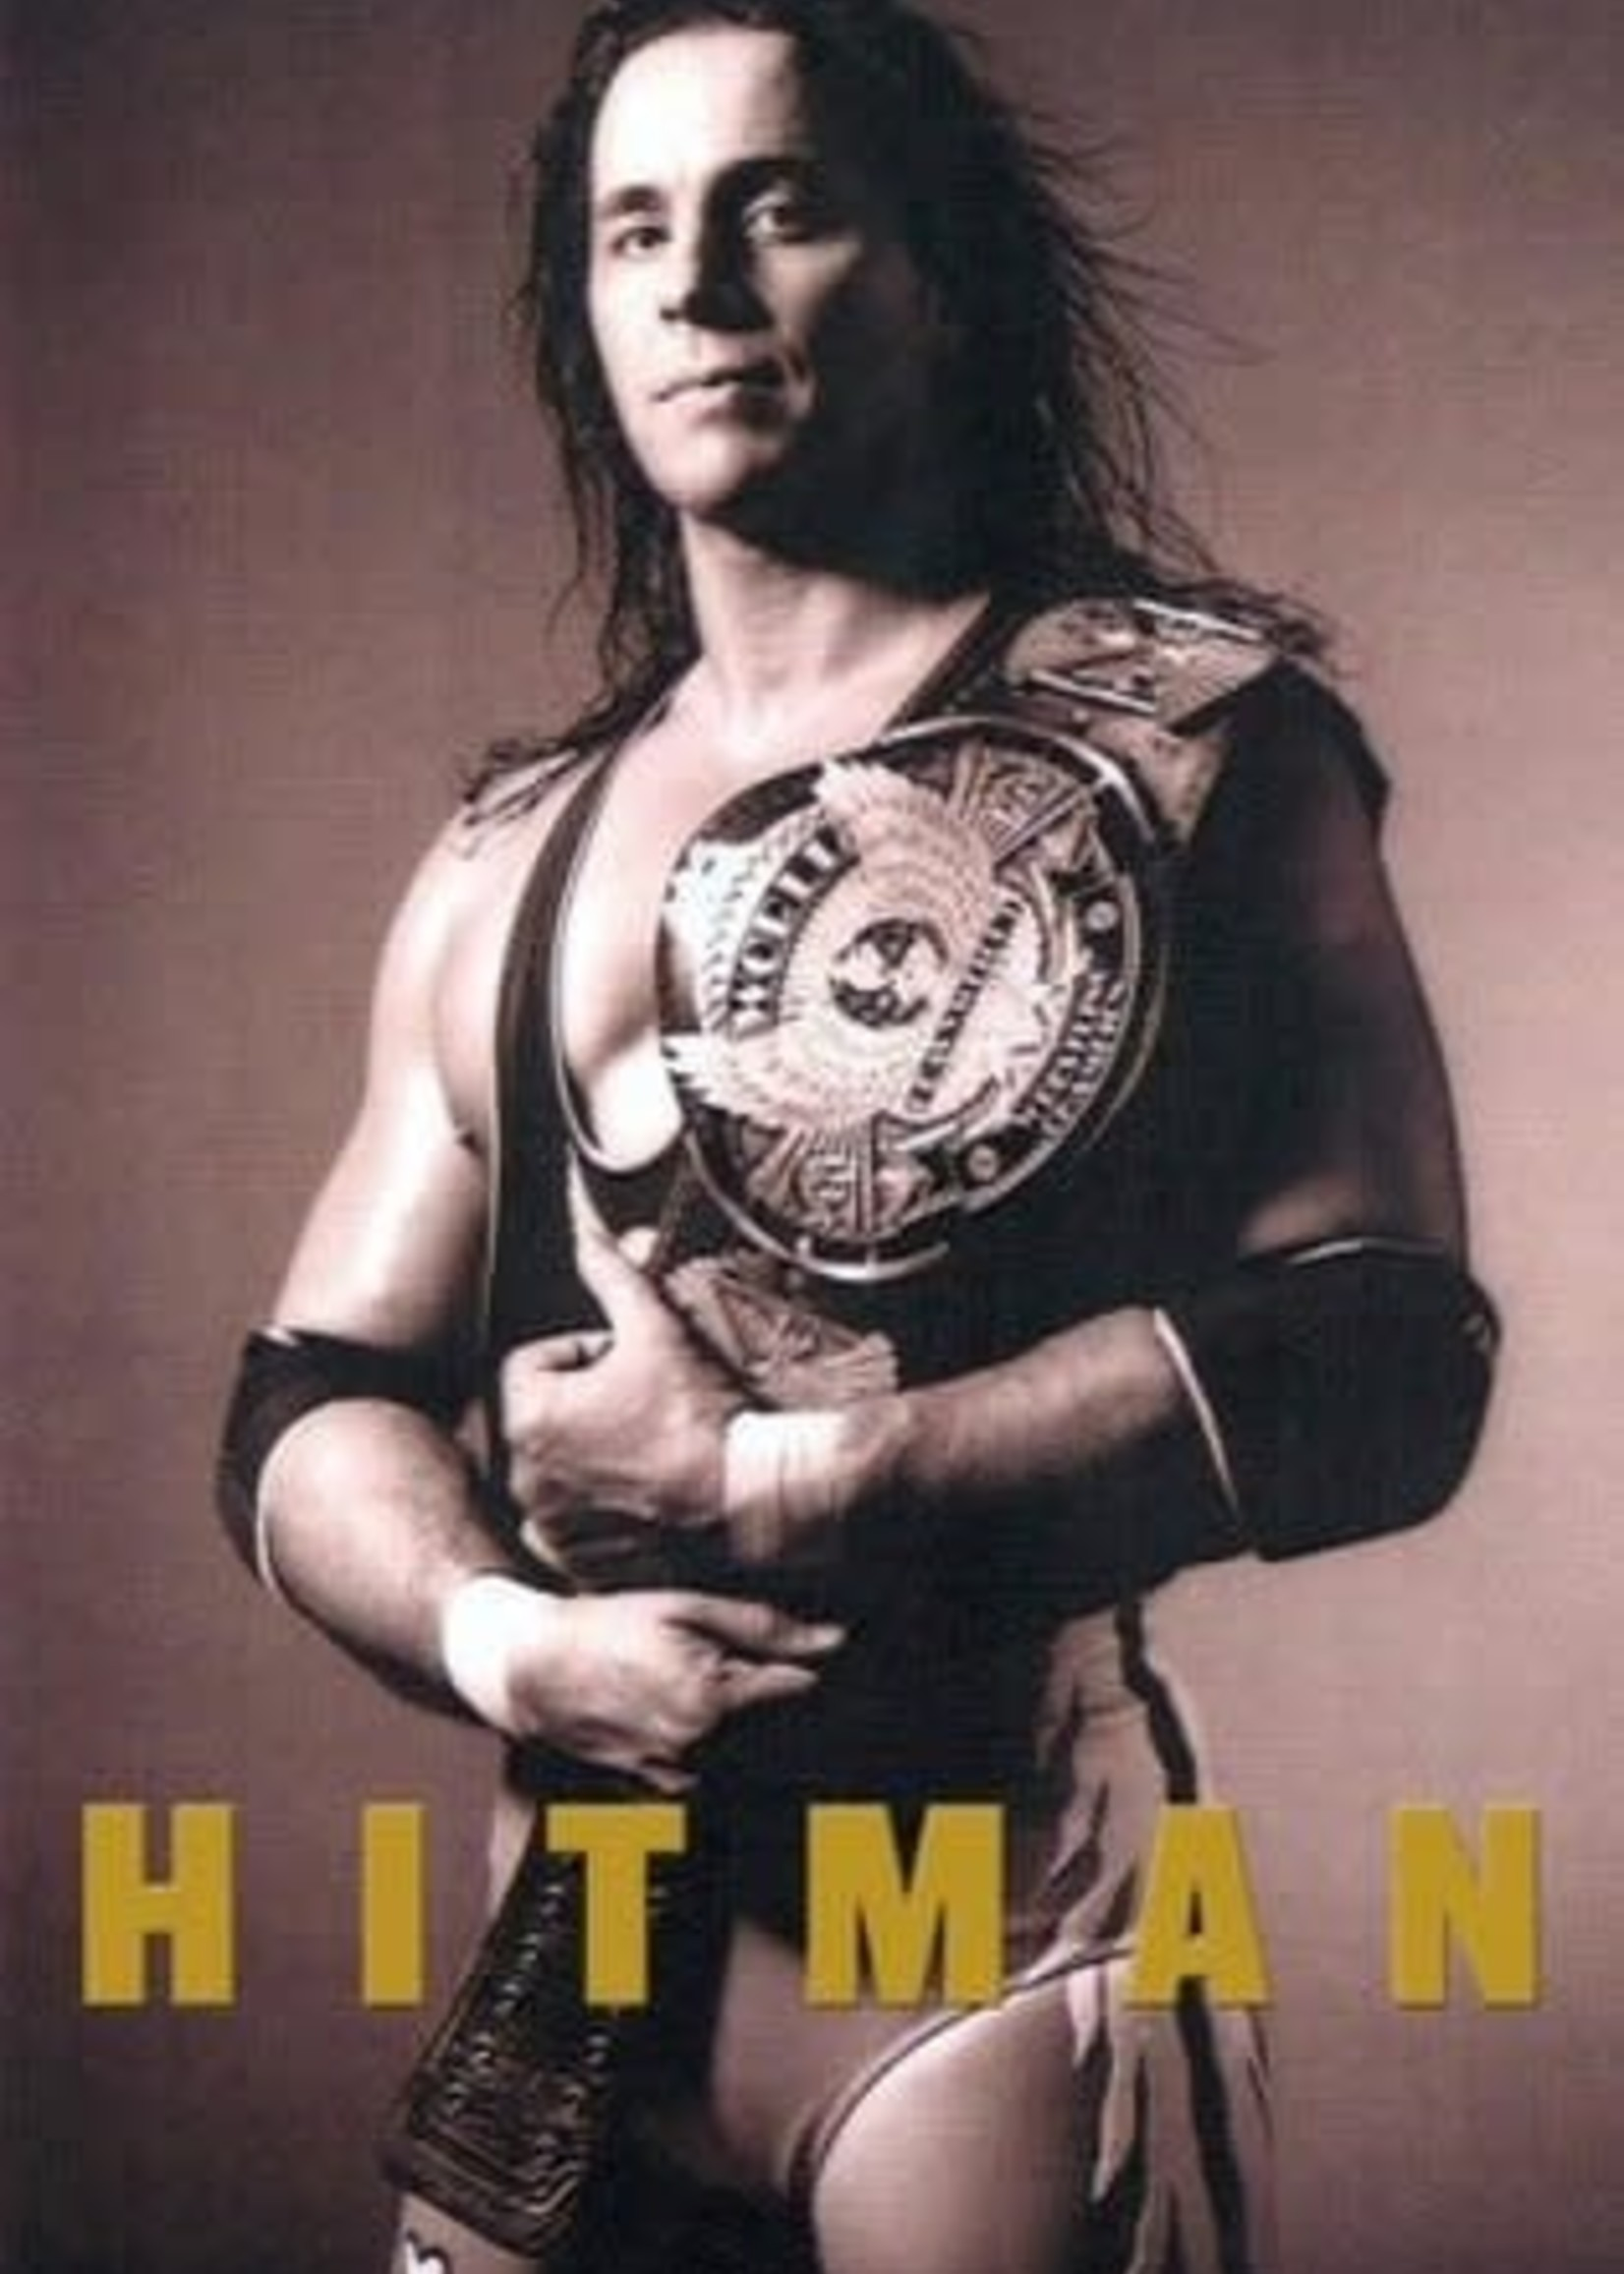 USED - Hitman: My Real Life in the Cartoon World of Wrestling by Bret Hart